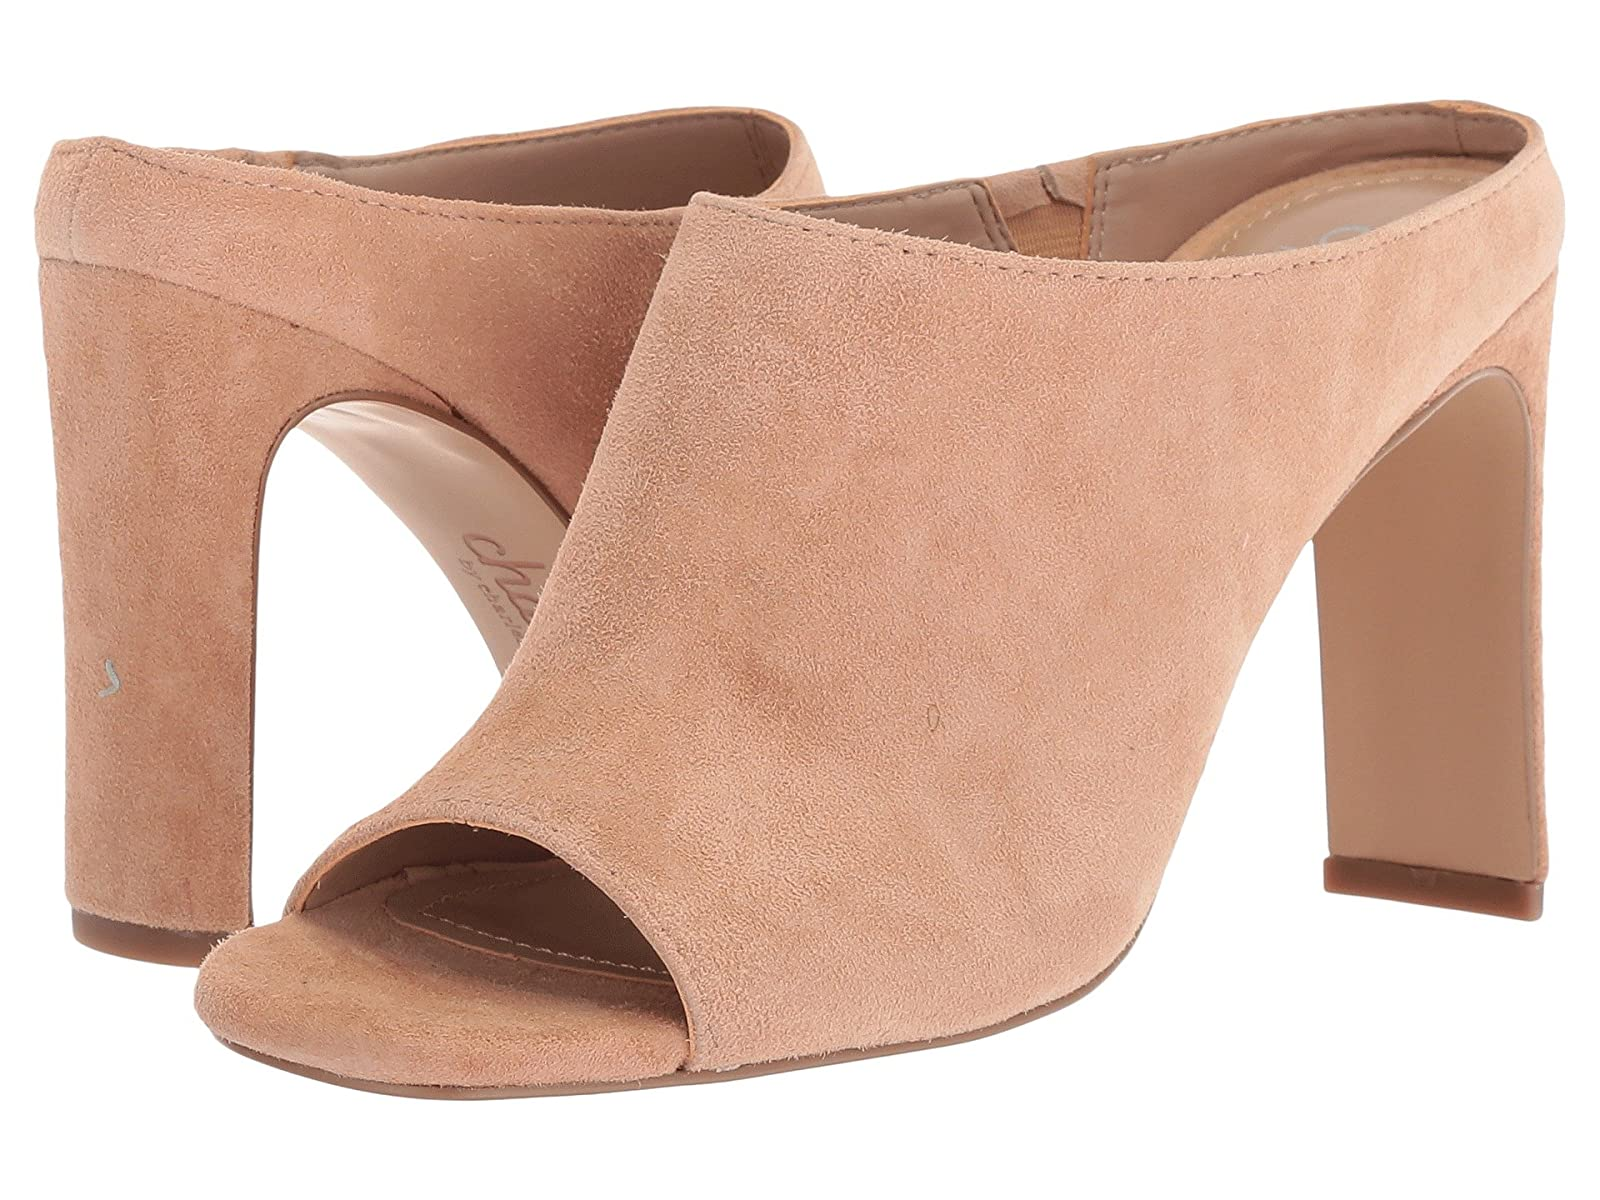 Charles by Charles David GoldieCheap and distinctive eye-catching shoes